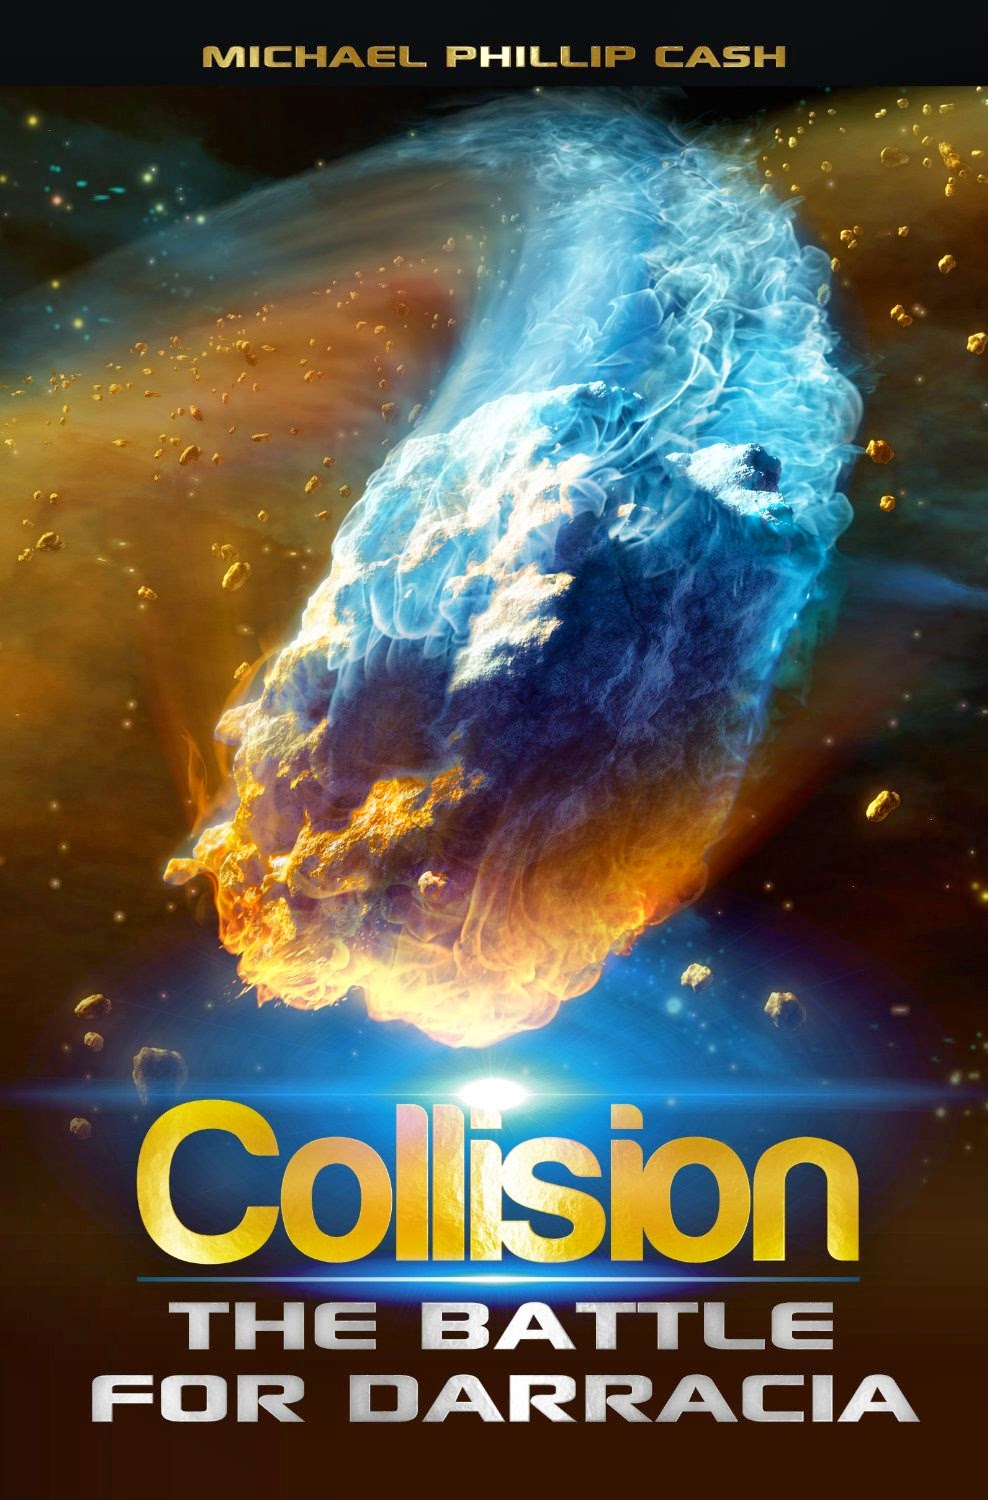 Collision by Michael Thomas Cash